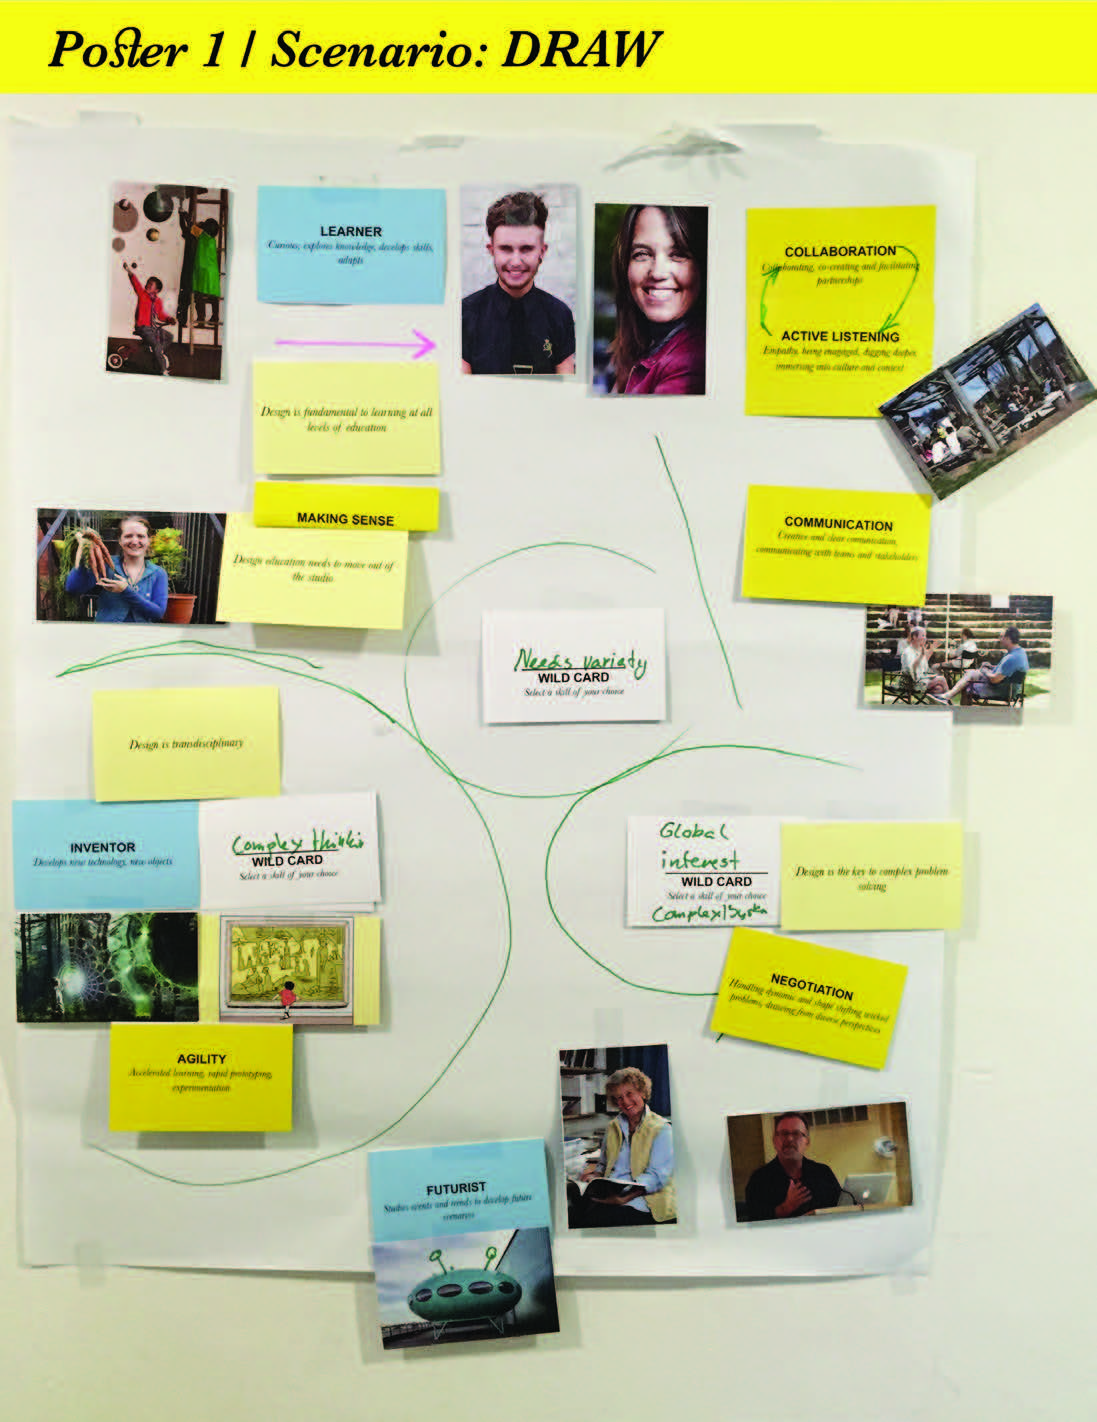 Figure 6 (l): Visualization for the Future of Design Education created by Group 1.